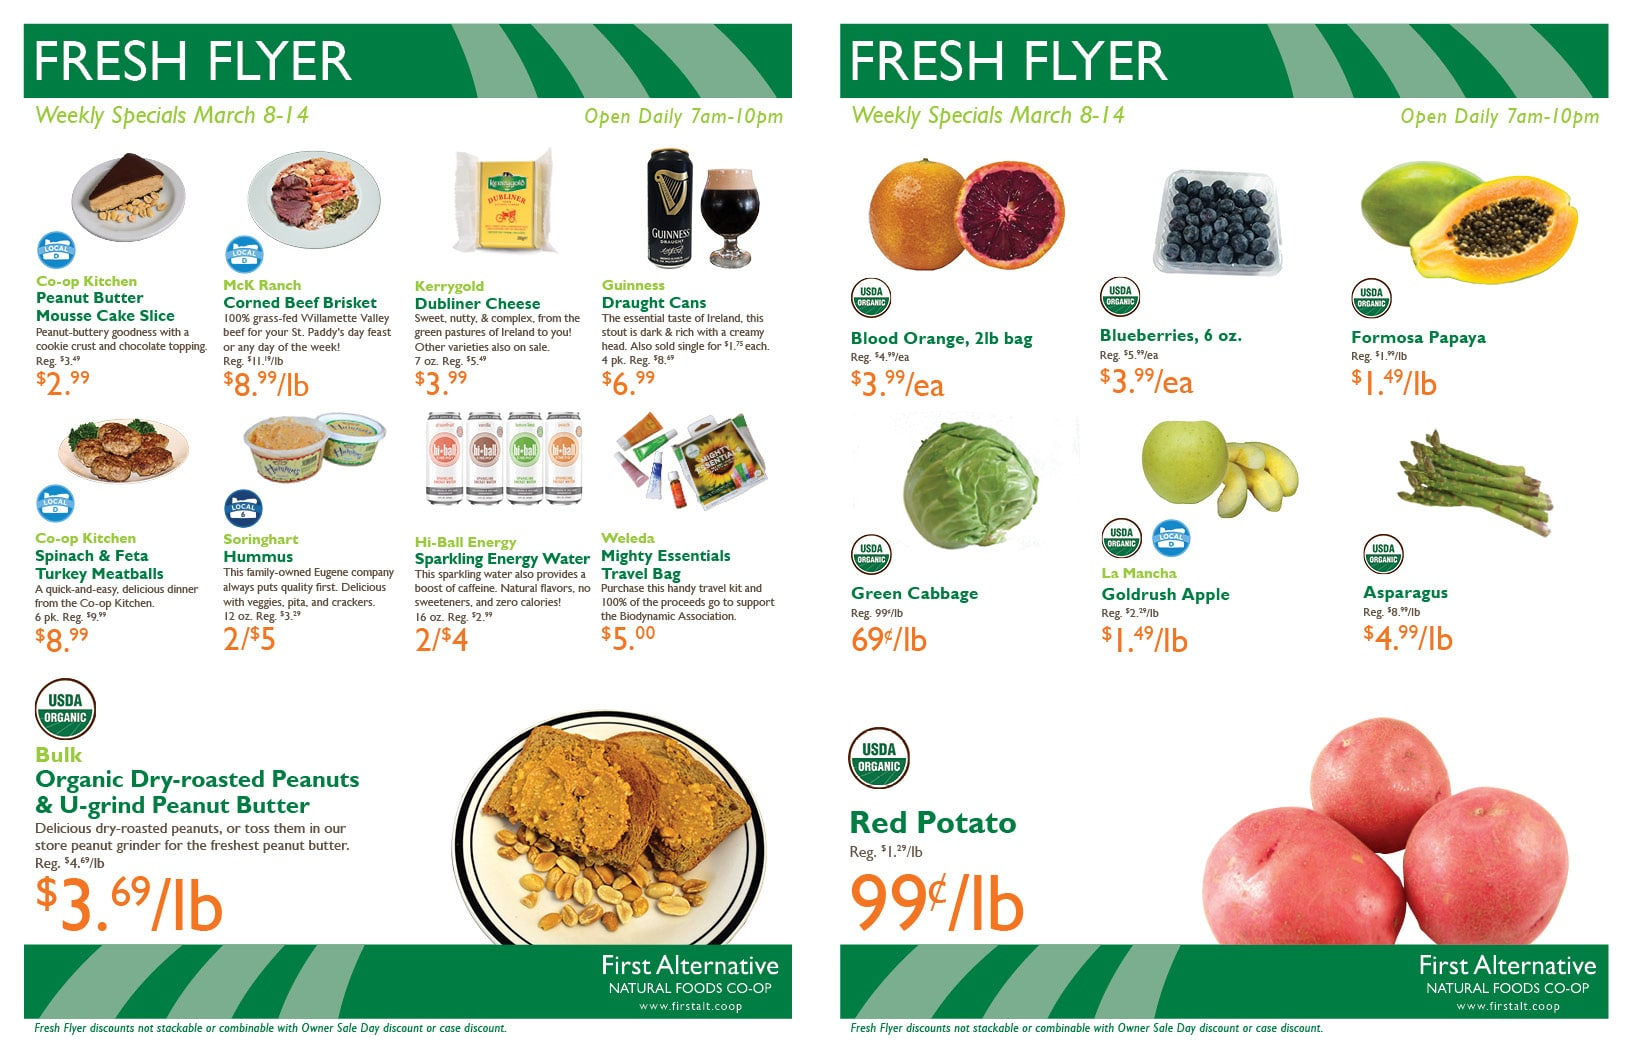 First Alternative Co-op Fresh Flyer Mar. 8-14